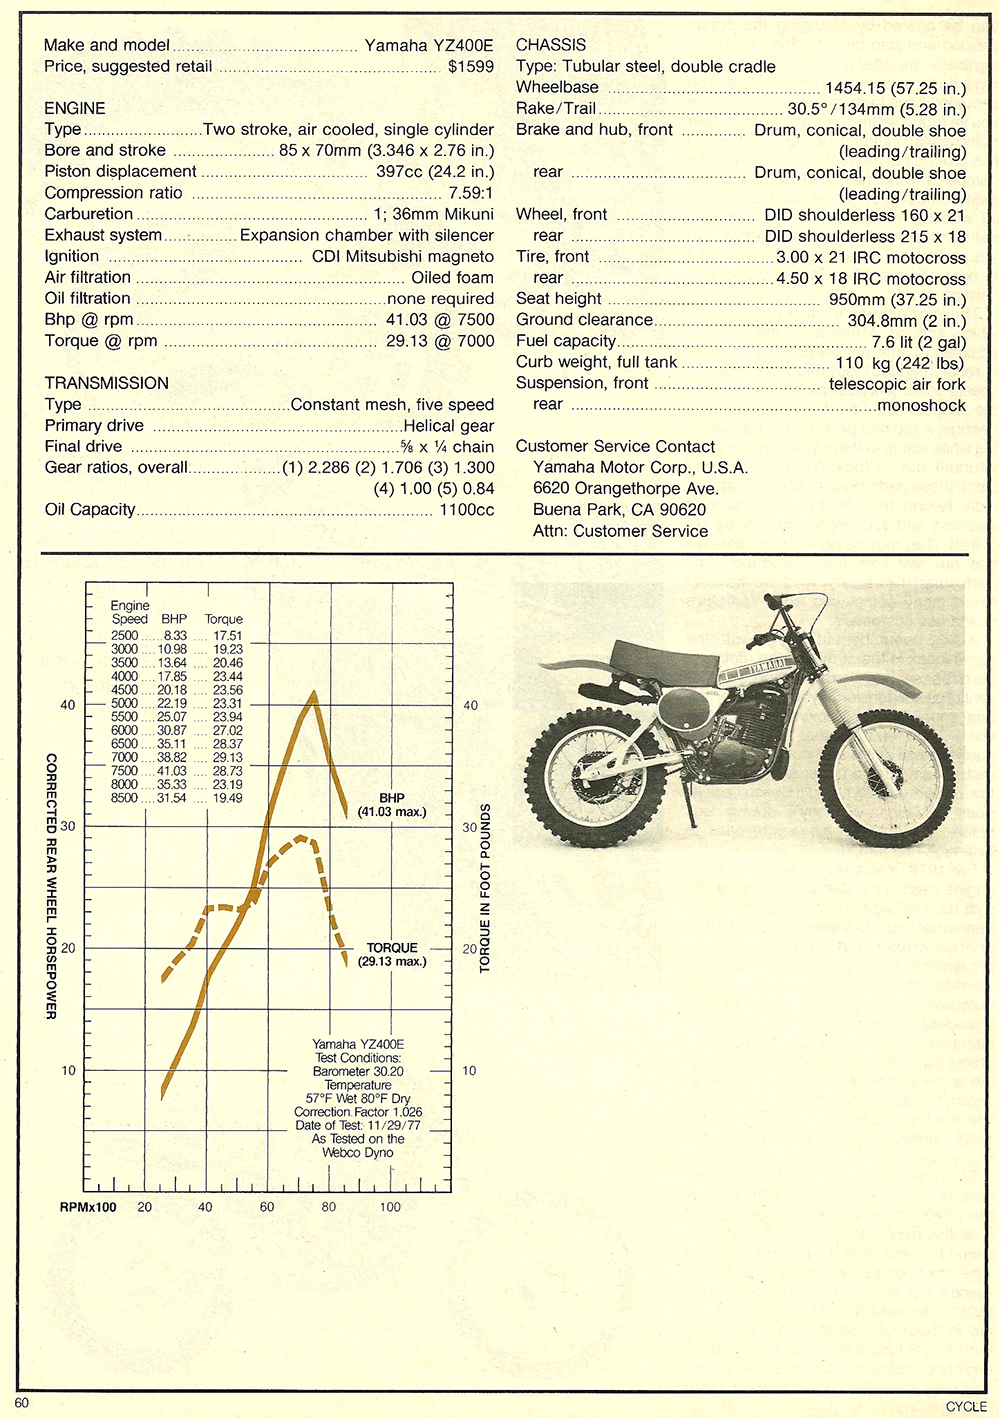 1978 Yamaha YZ400E road test 5.jpg